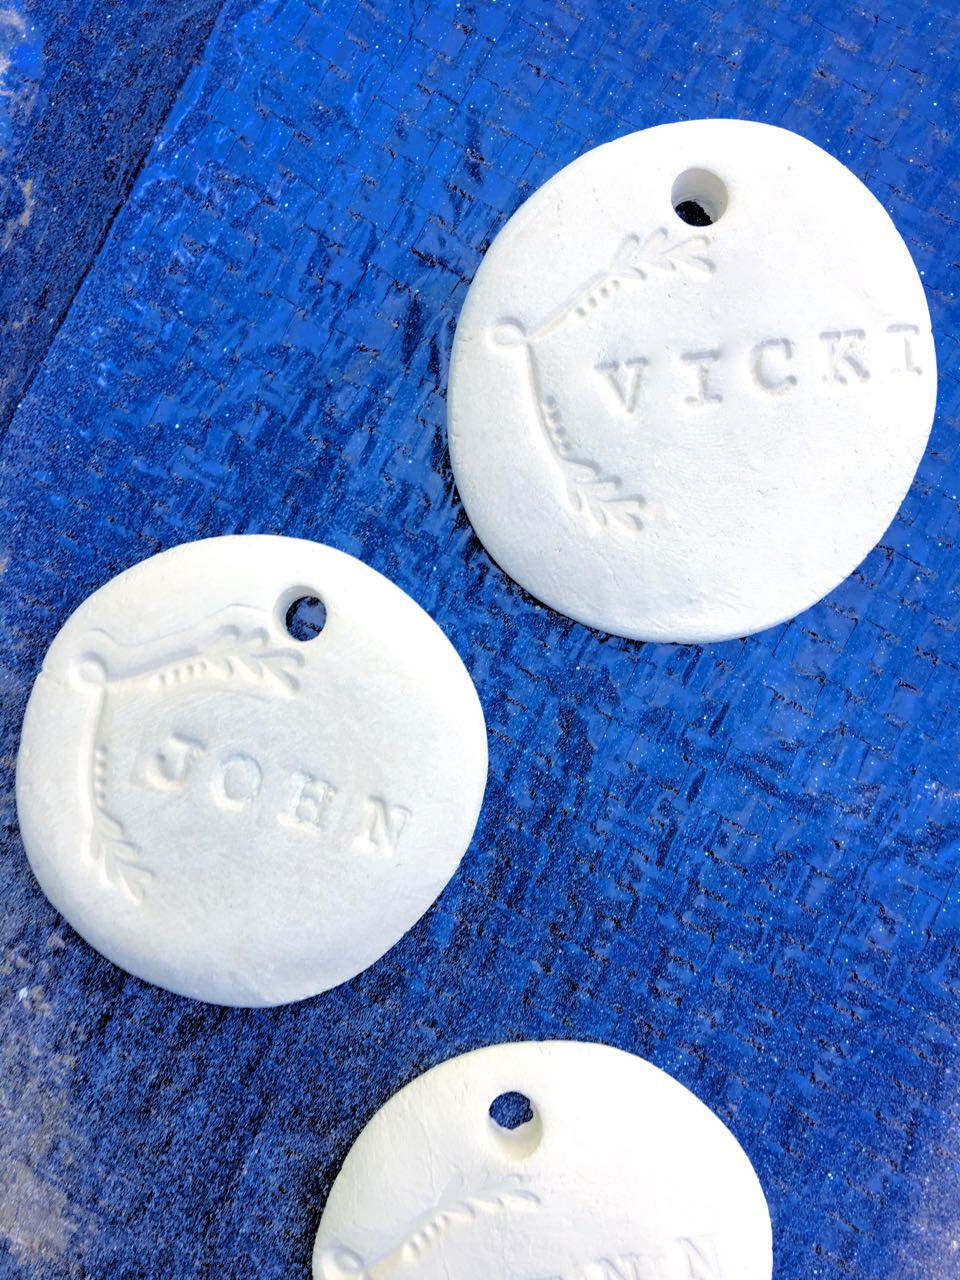 DIY Clay Tags